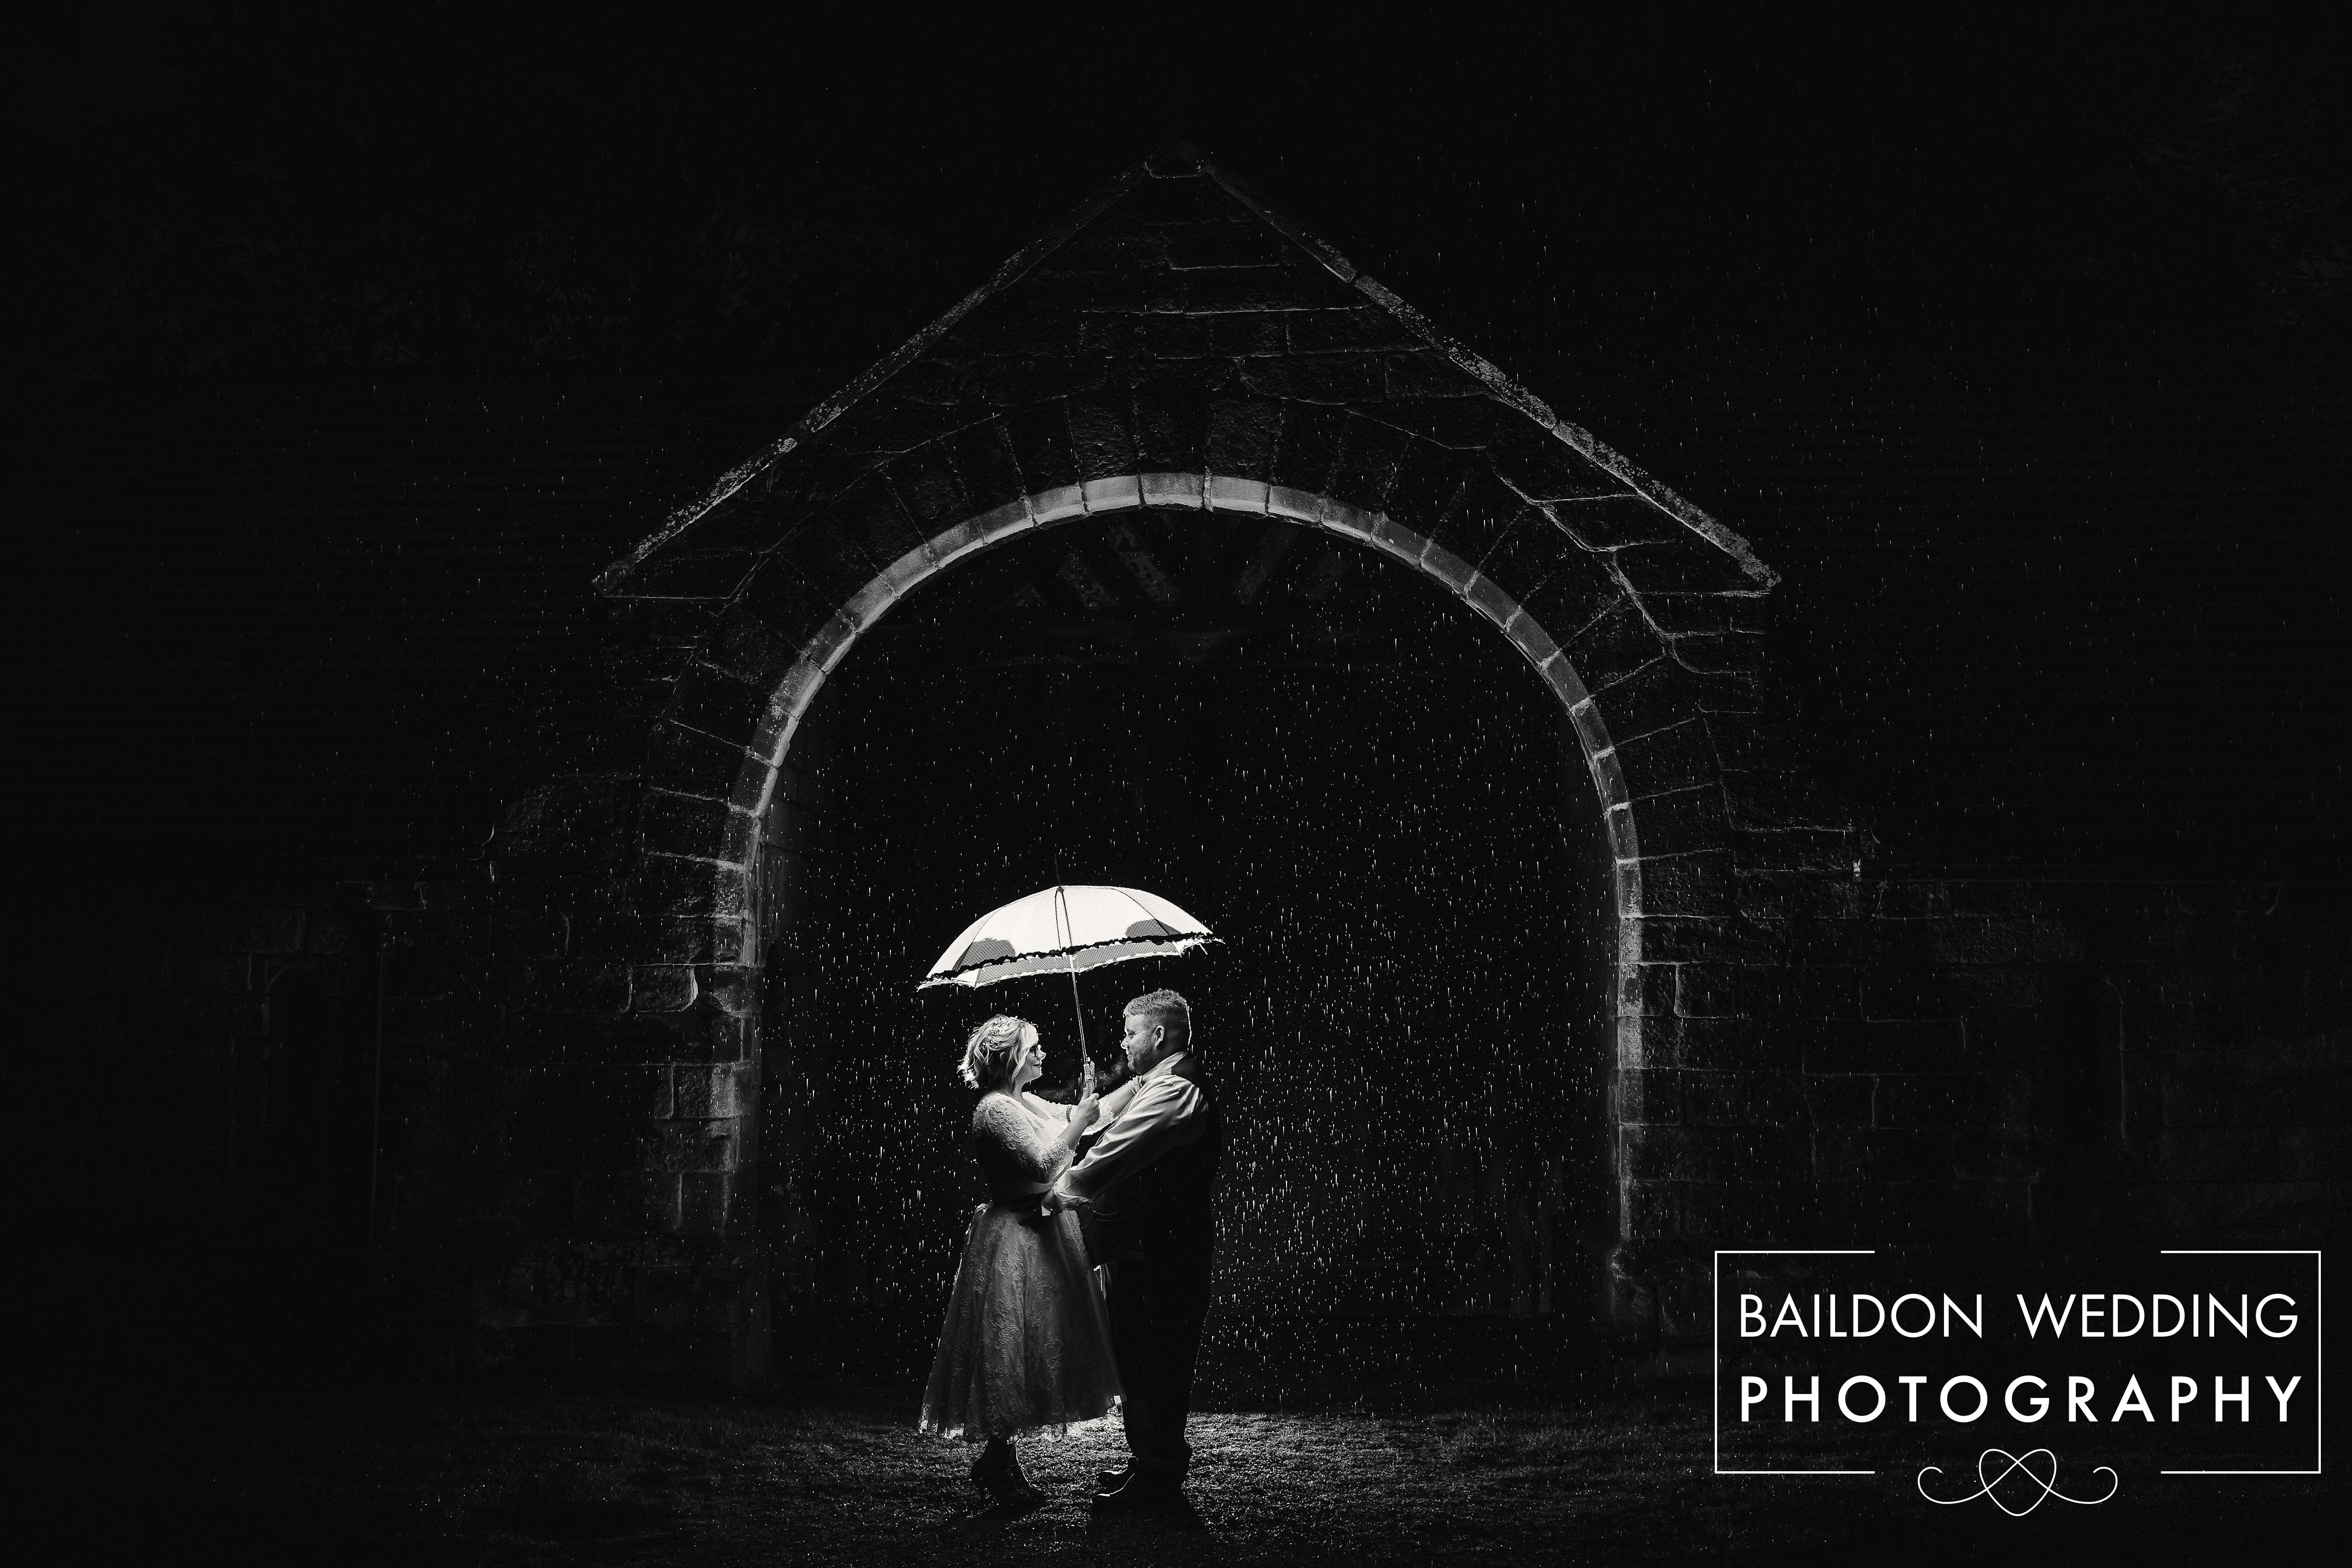 East Riddlesden Hall wedding night shot with rain